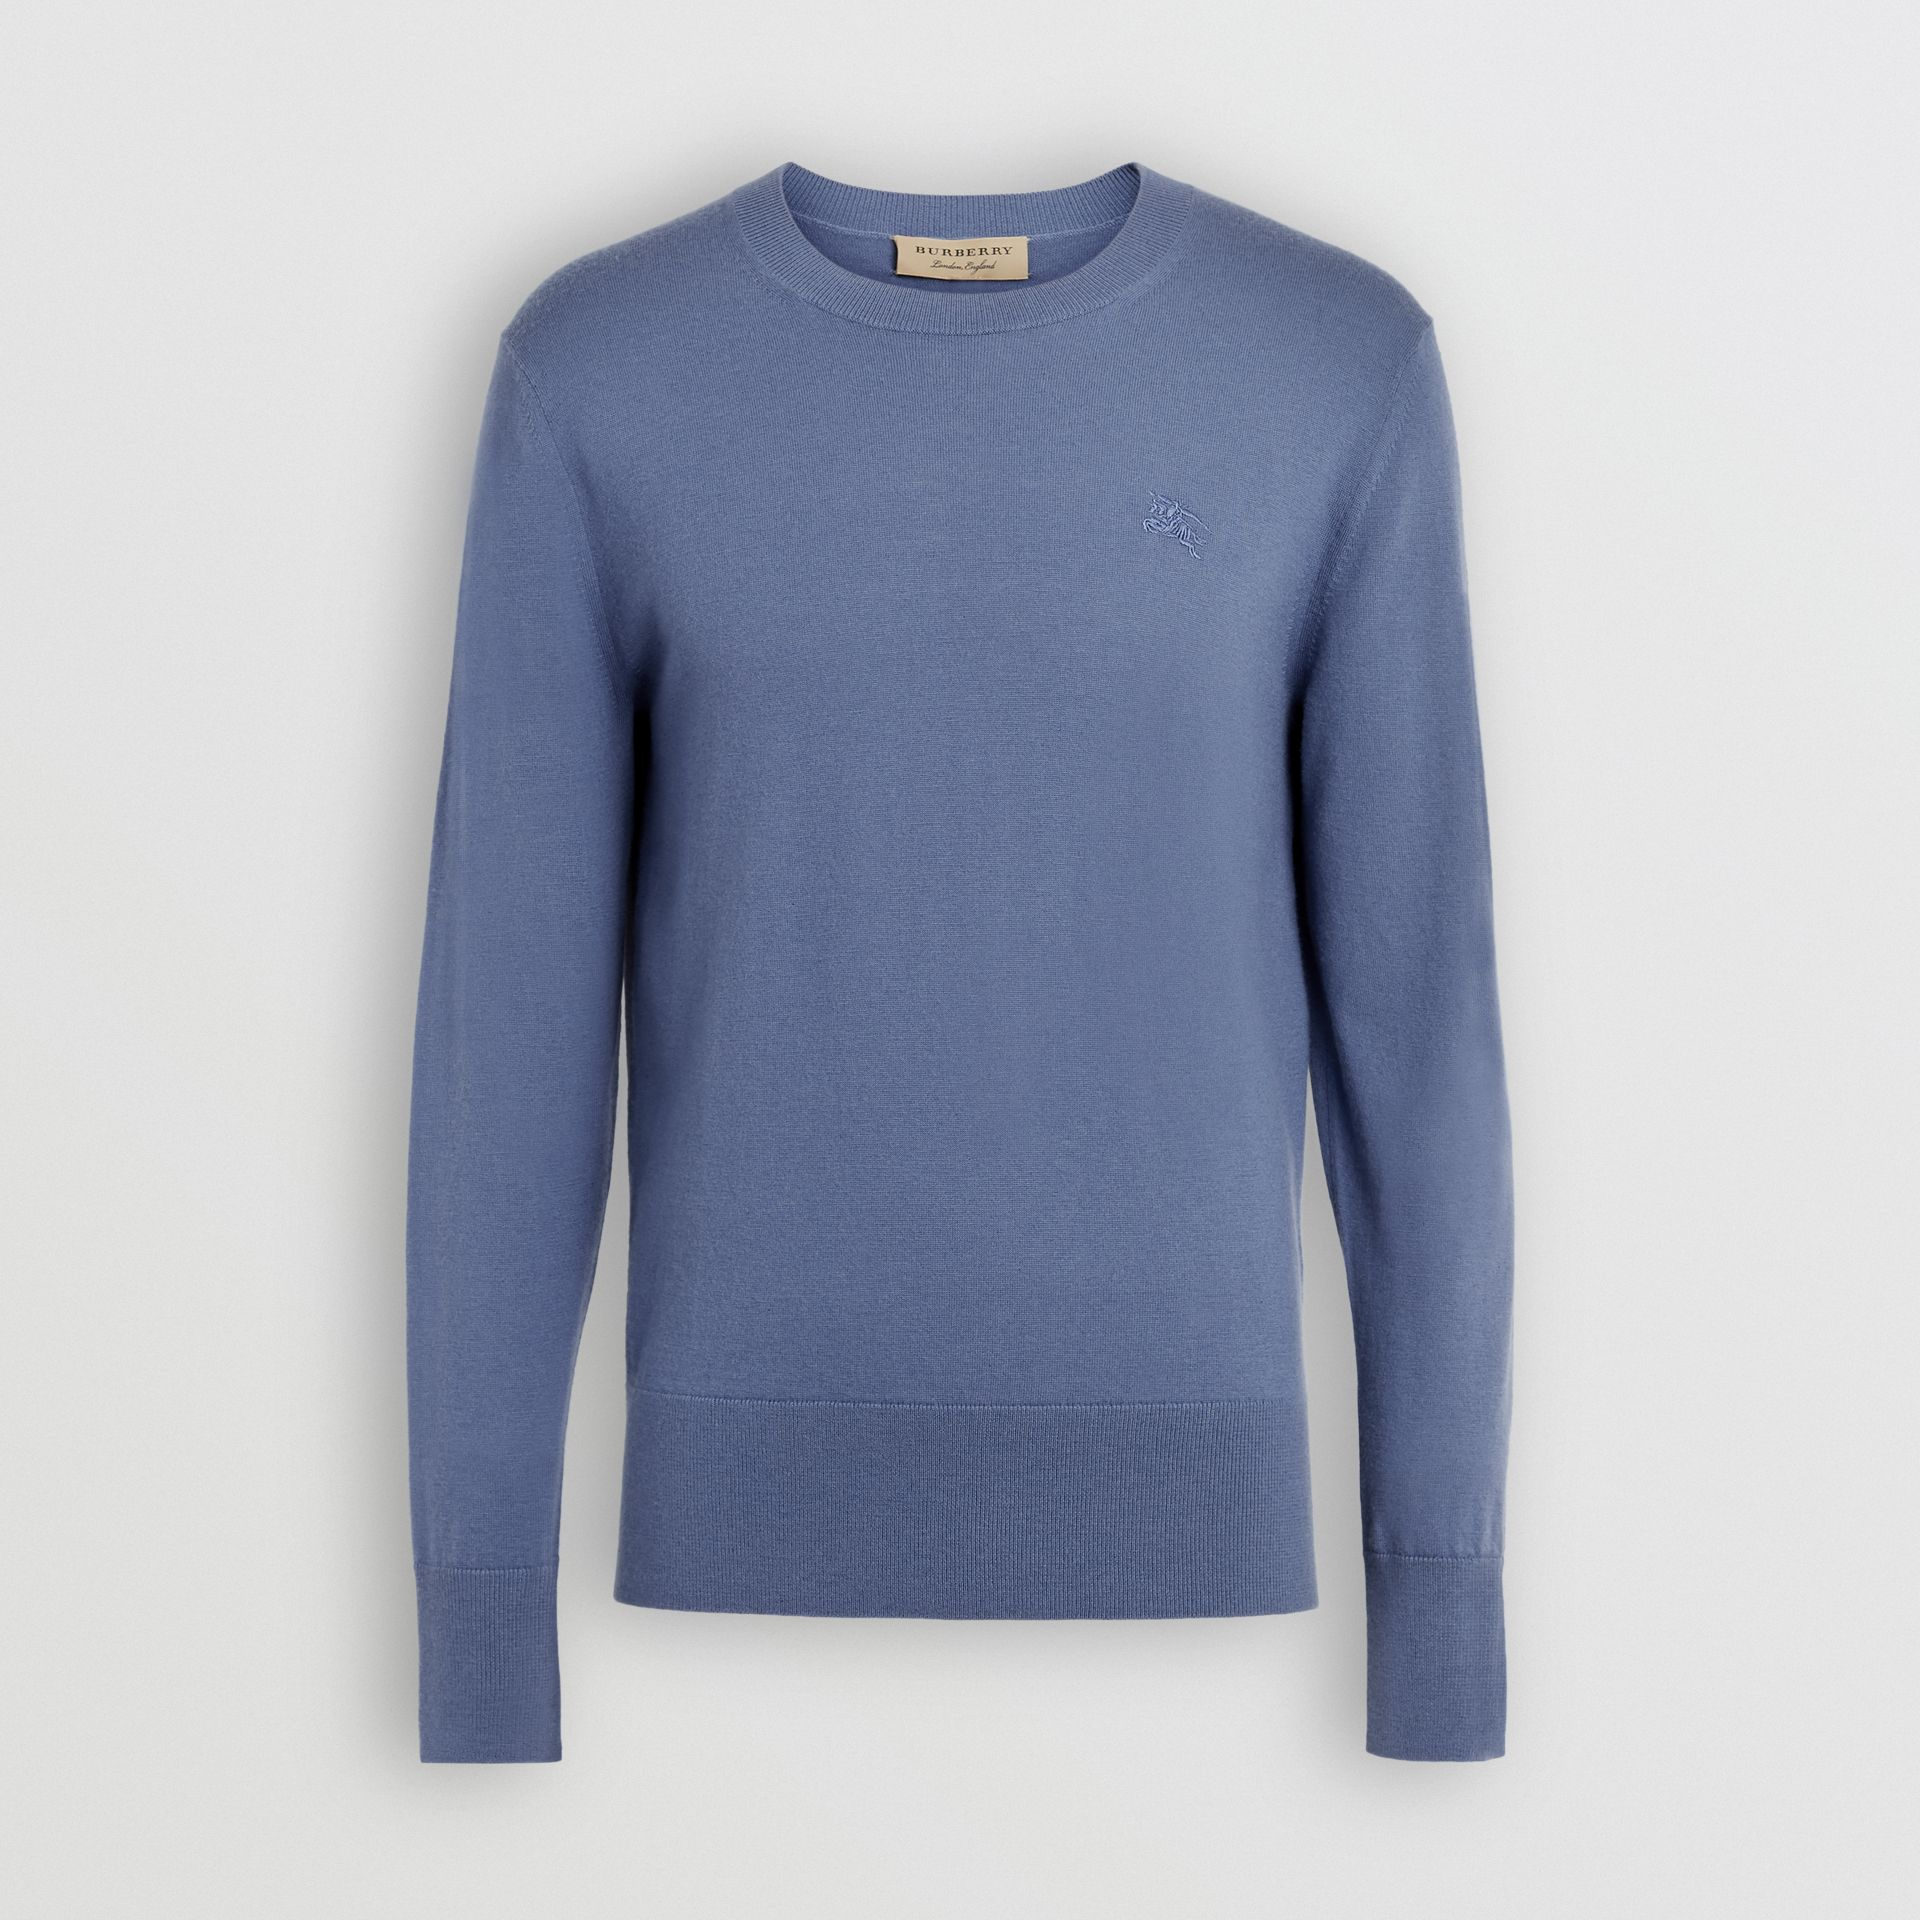 Crew Neck Cashmere Sweater in Airforce Blue - Men | Burberry United Kingdom - gallery image 3